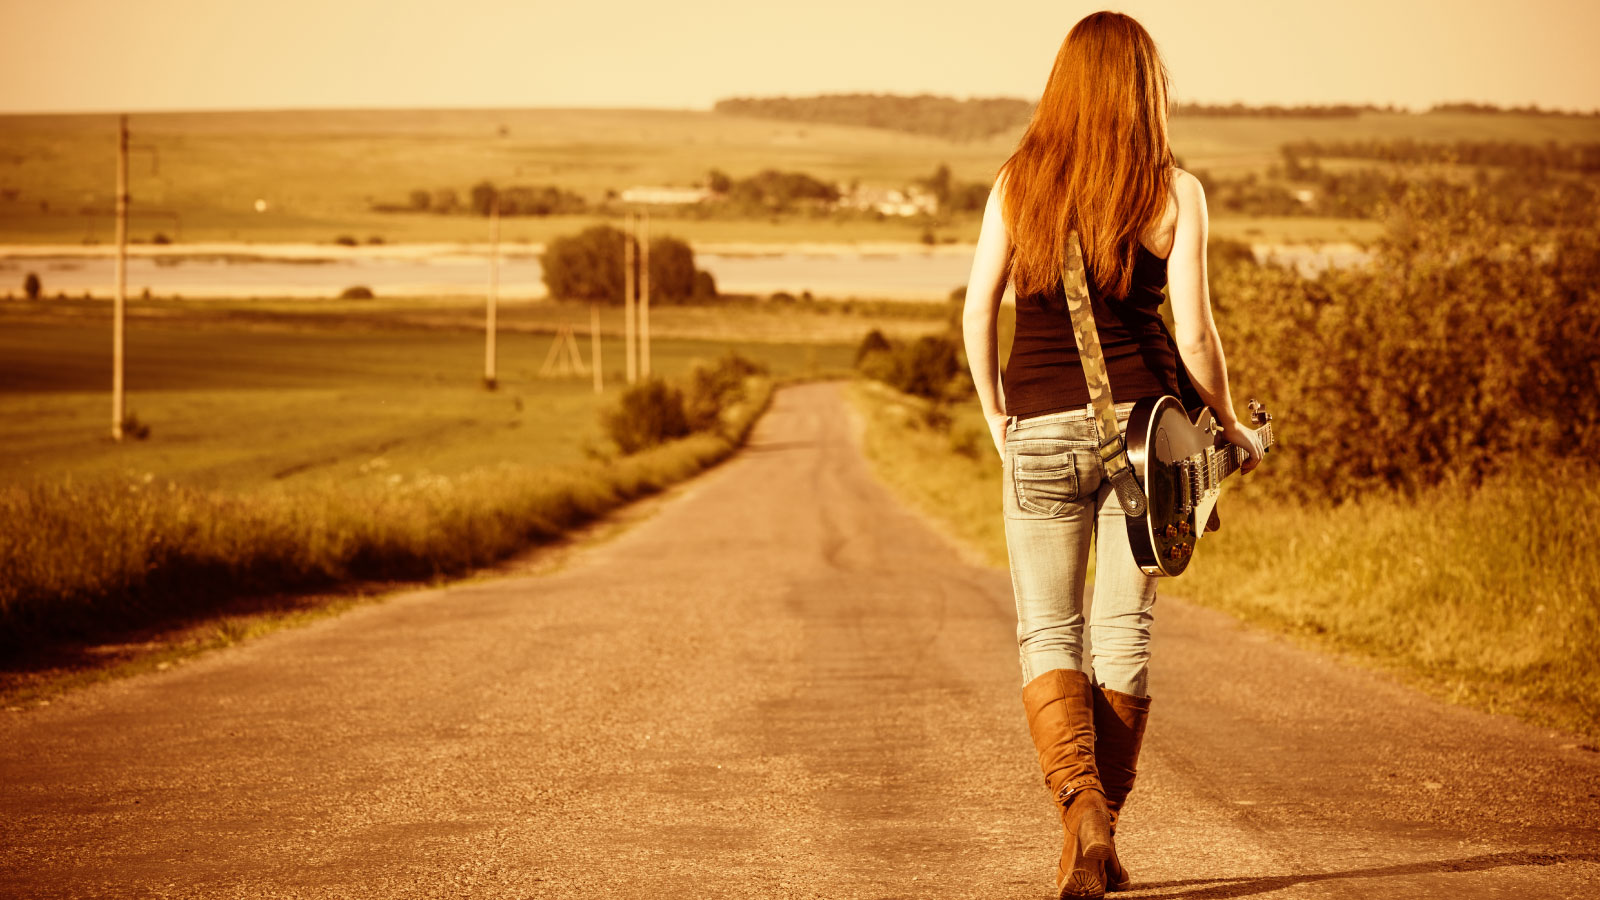 Woman with guitar on the country road